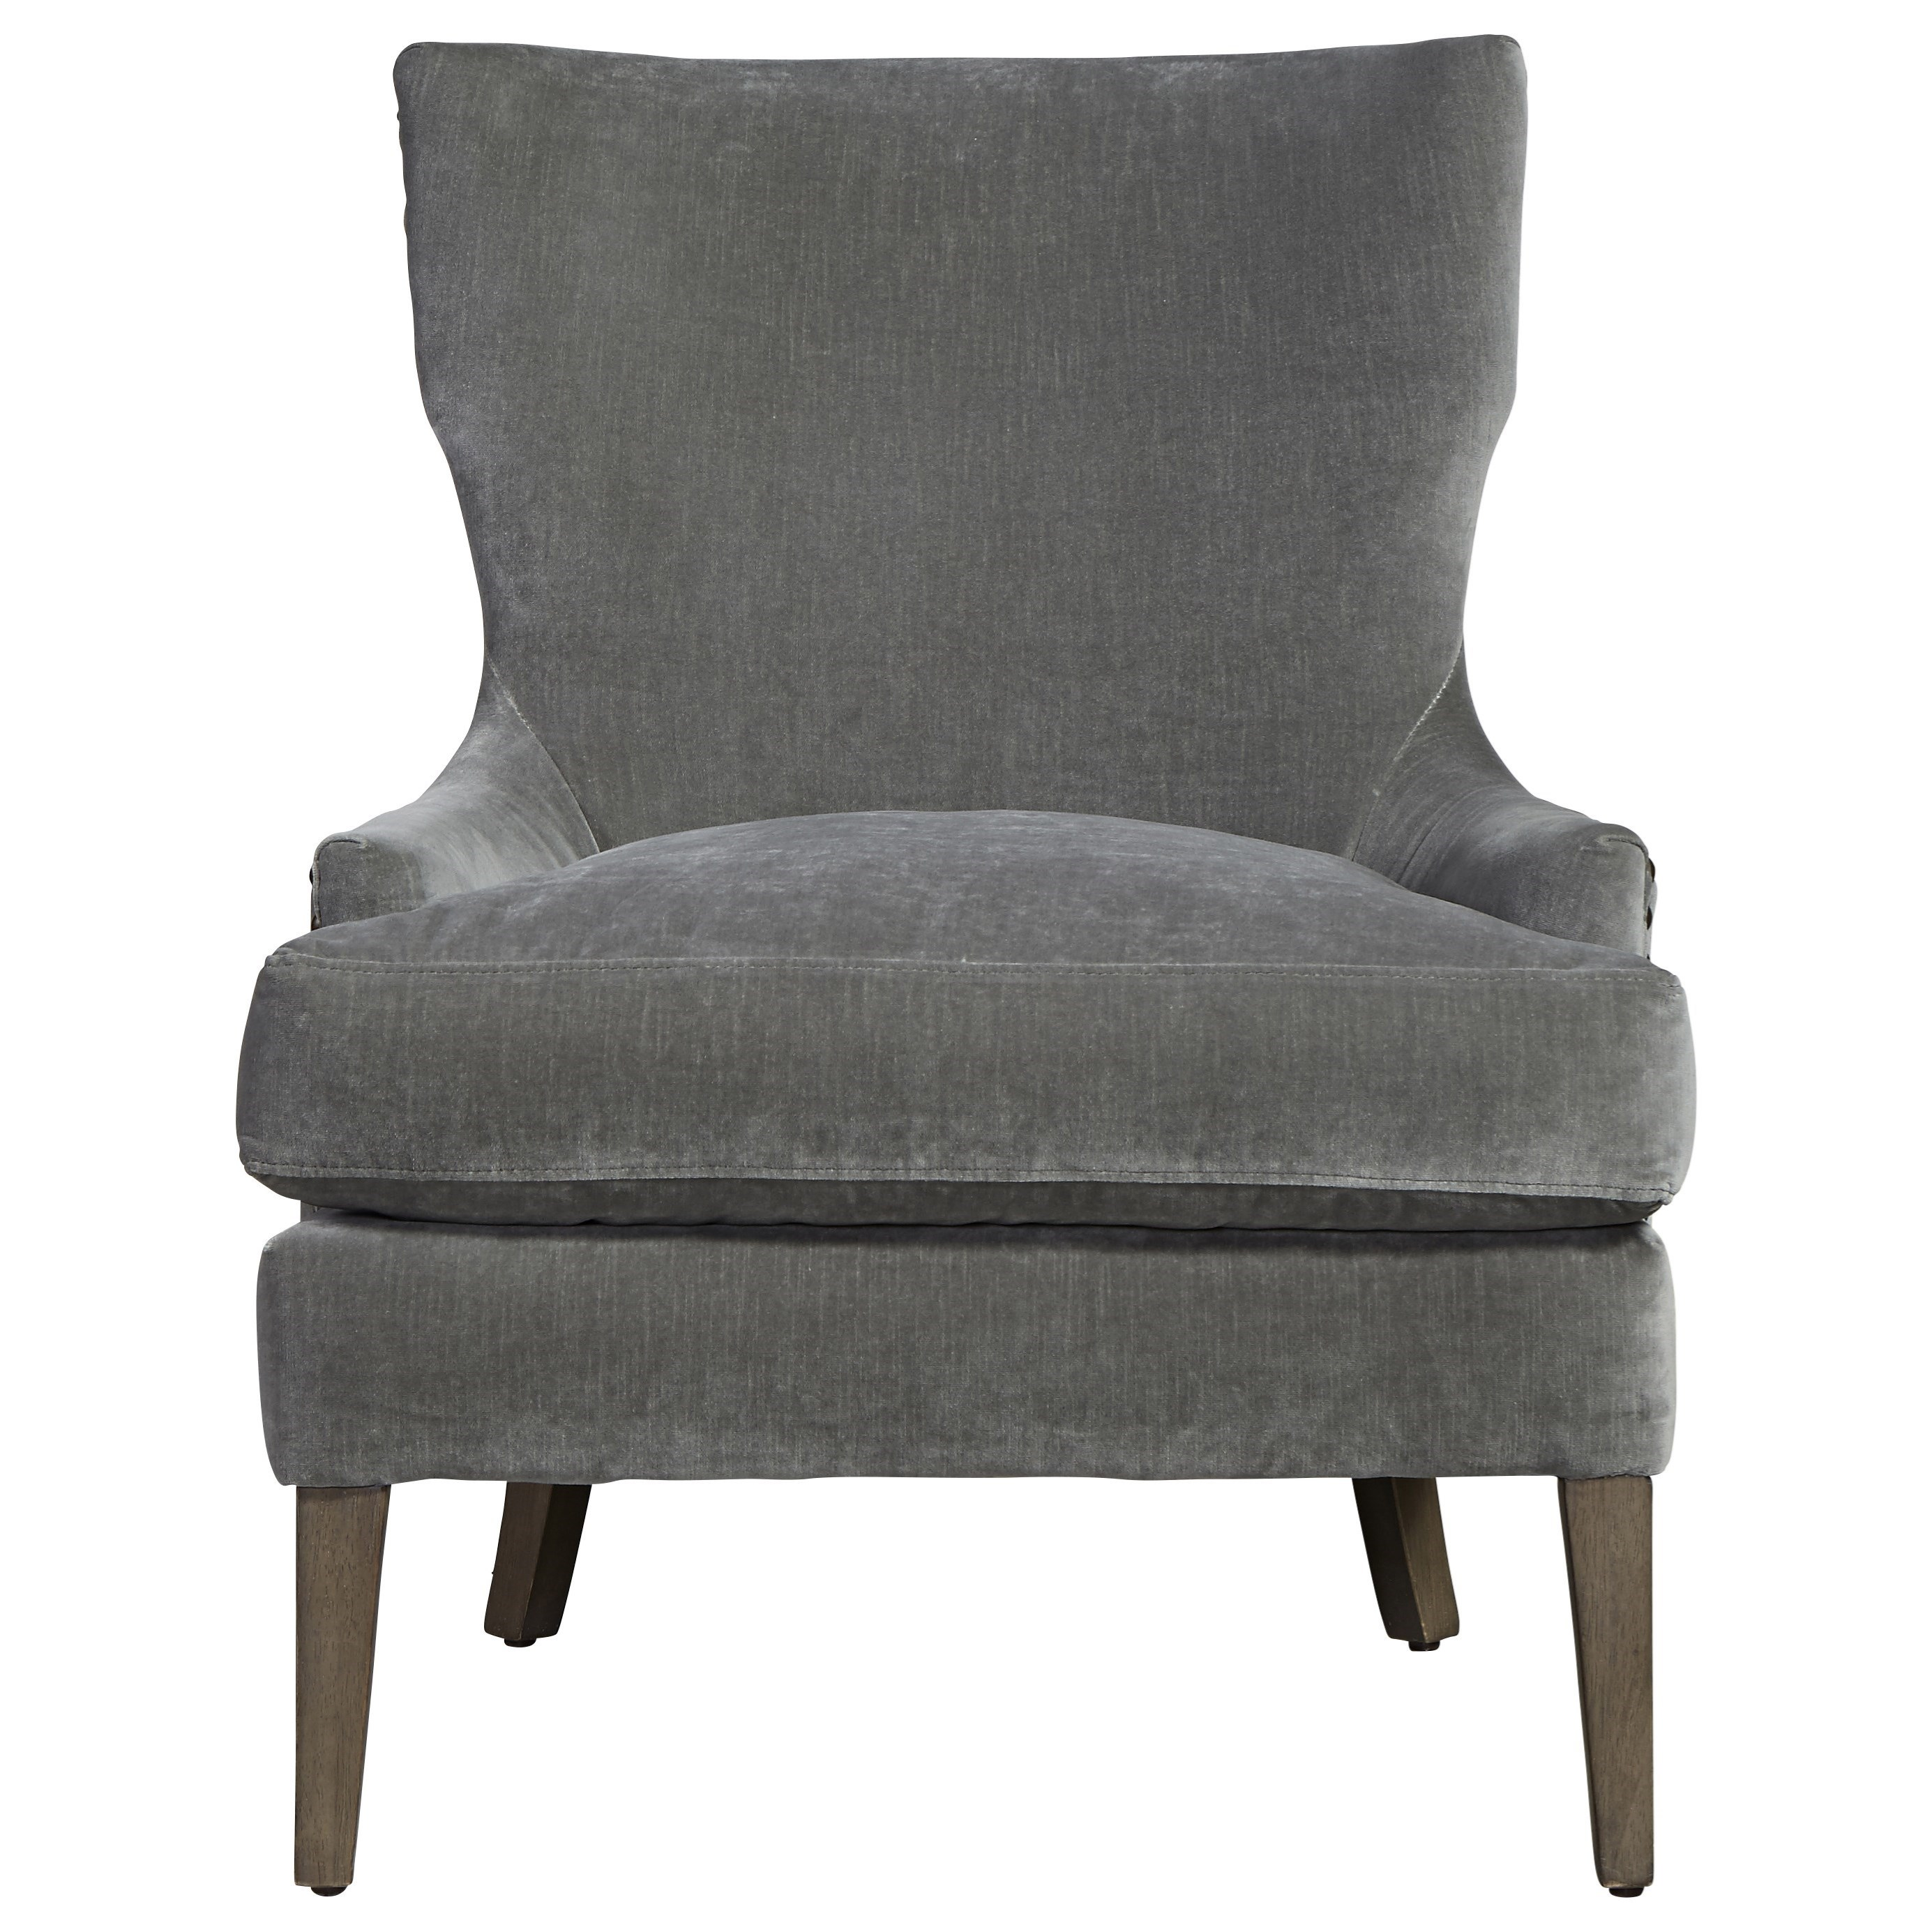 Accents Aubrey Accent Chair by Universal at Baer's Furniture